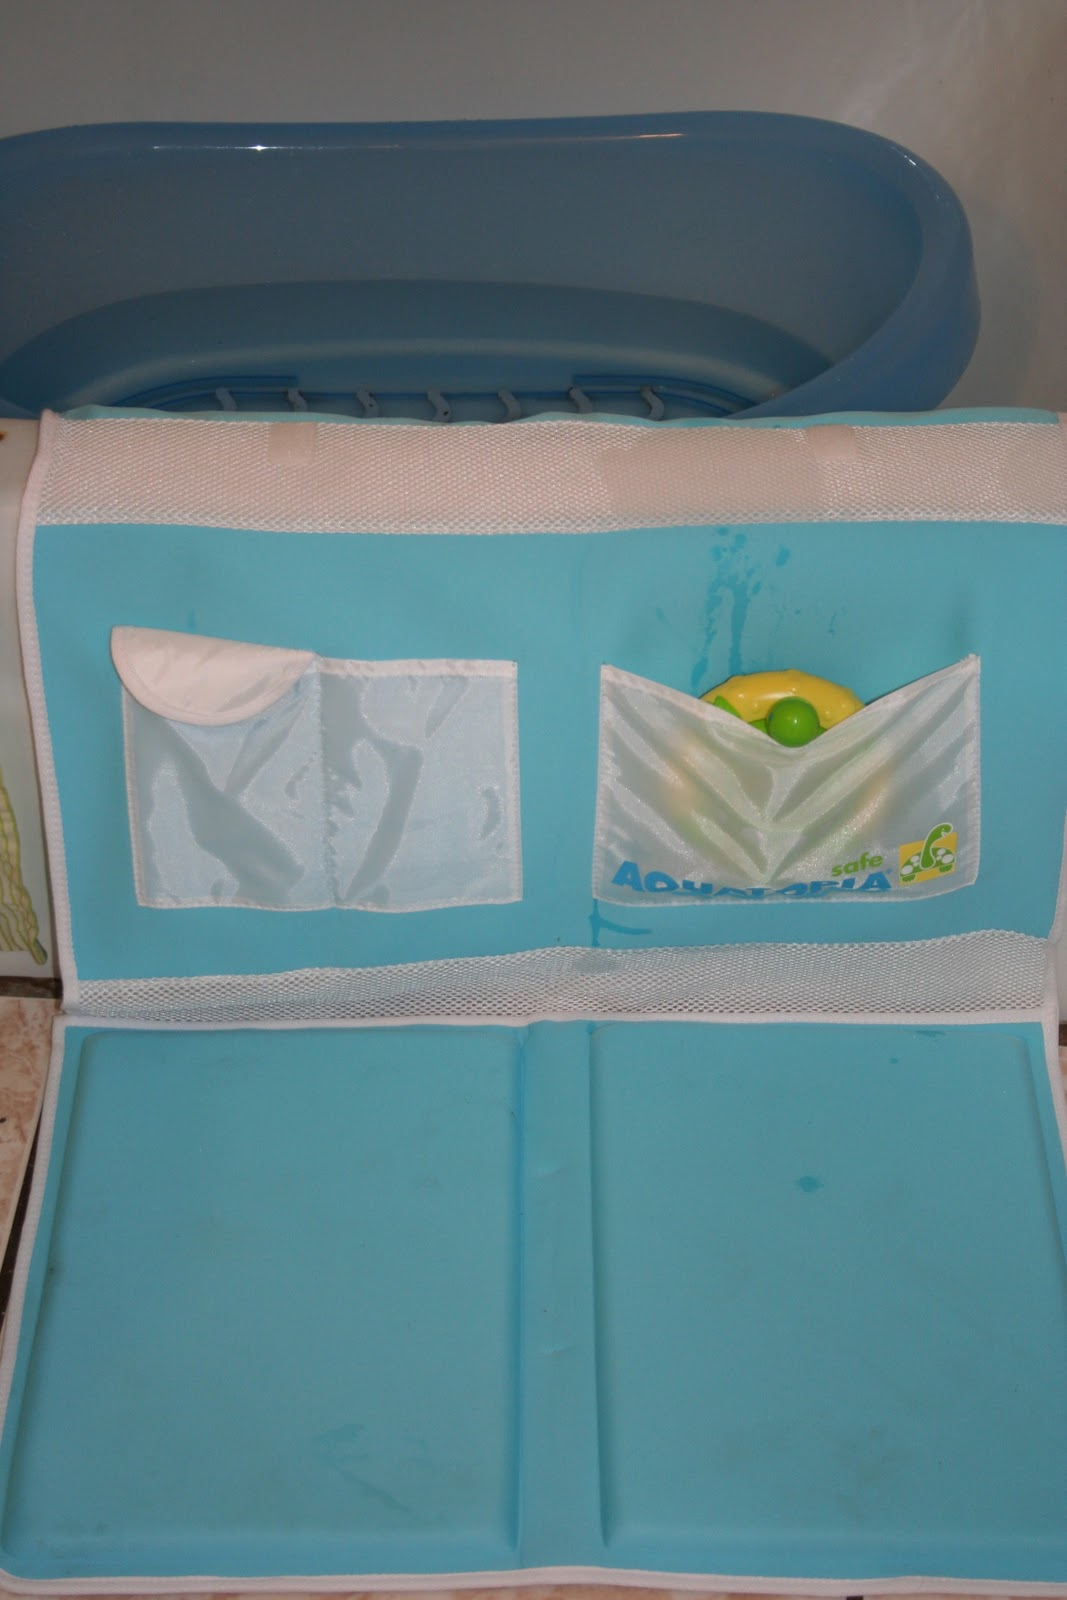 Aquatopia Bath Time Safety Products Review And Giveaway